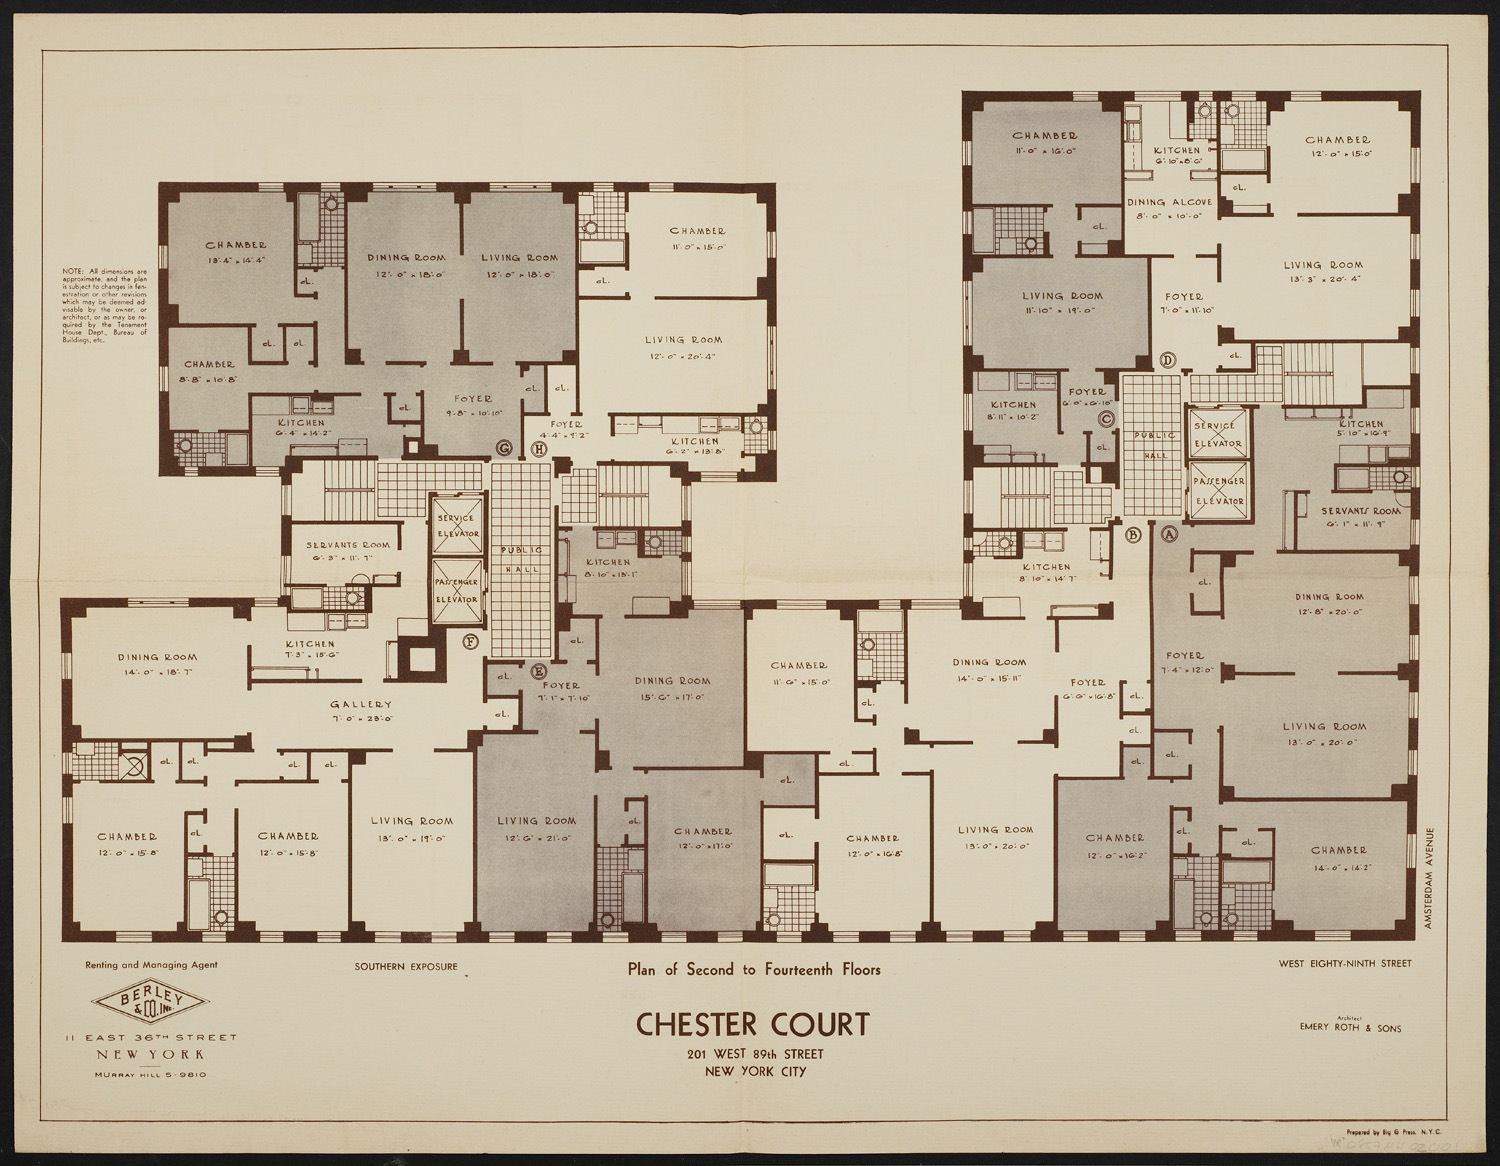 for floor plan images of individual apartment lines as originally